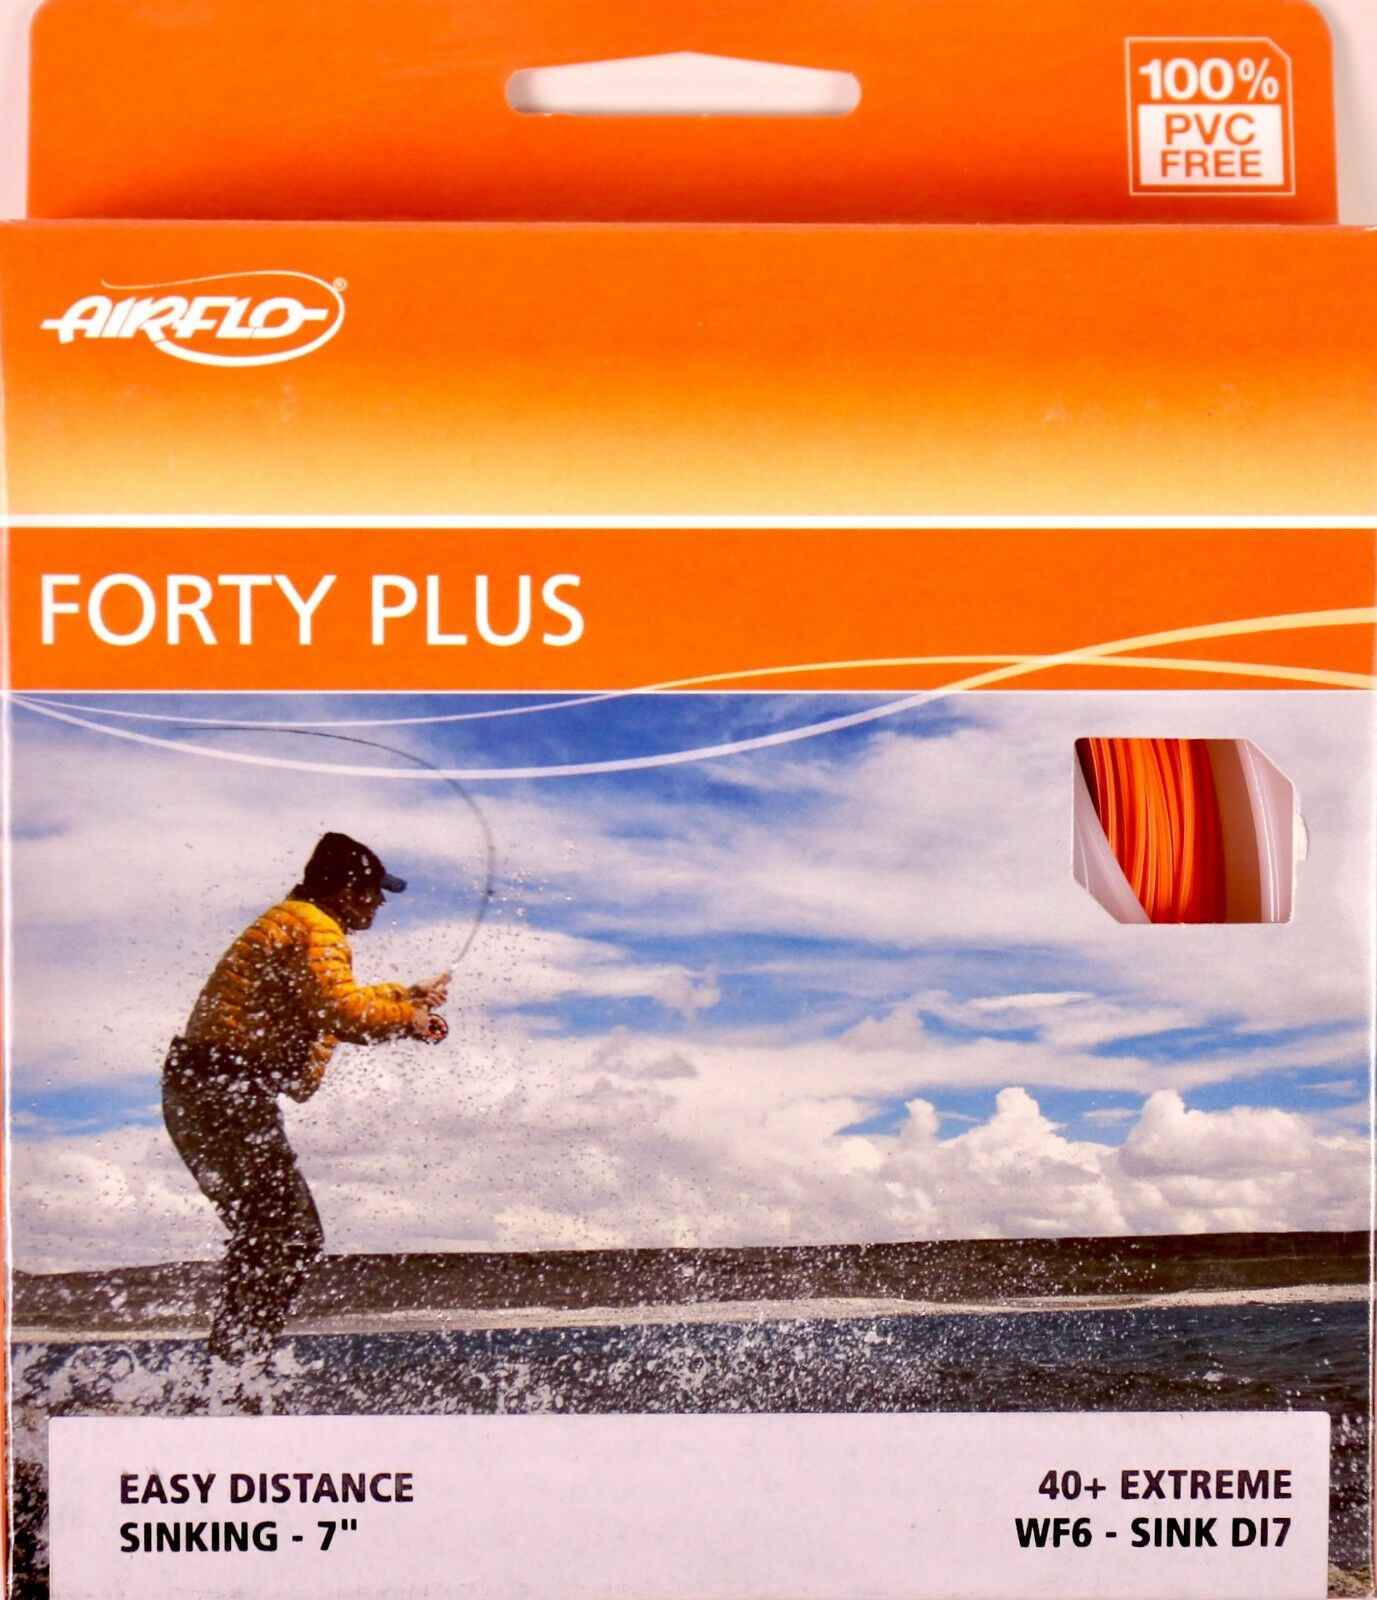 Airflo Forty Plus Extreme WF6 Sink DI7 Fly Line FREE FAST SHIPPING 40+